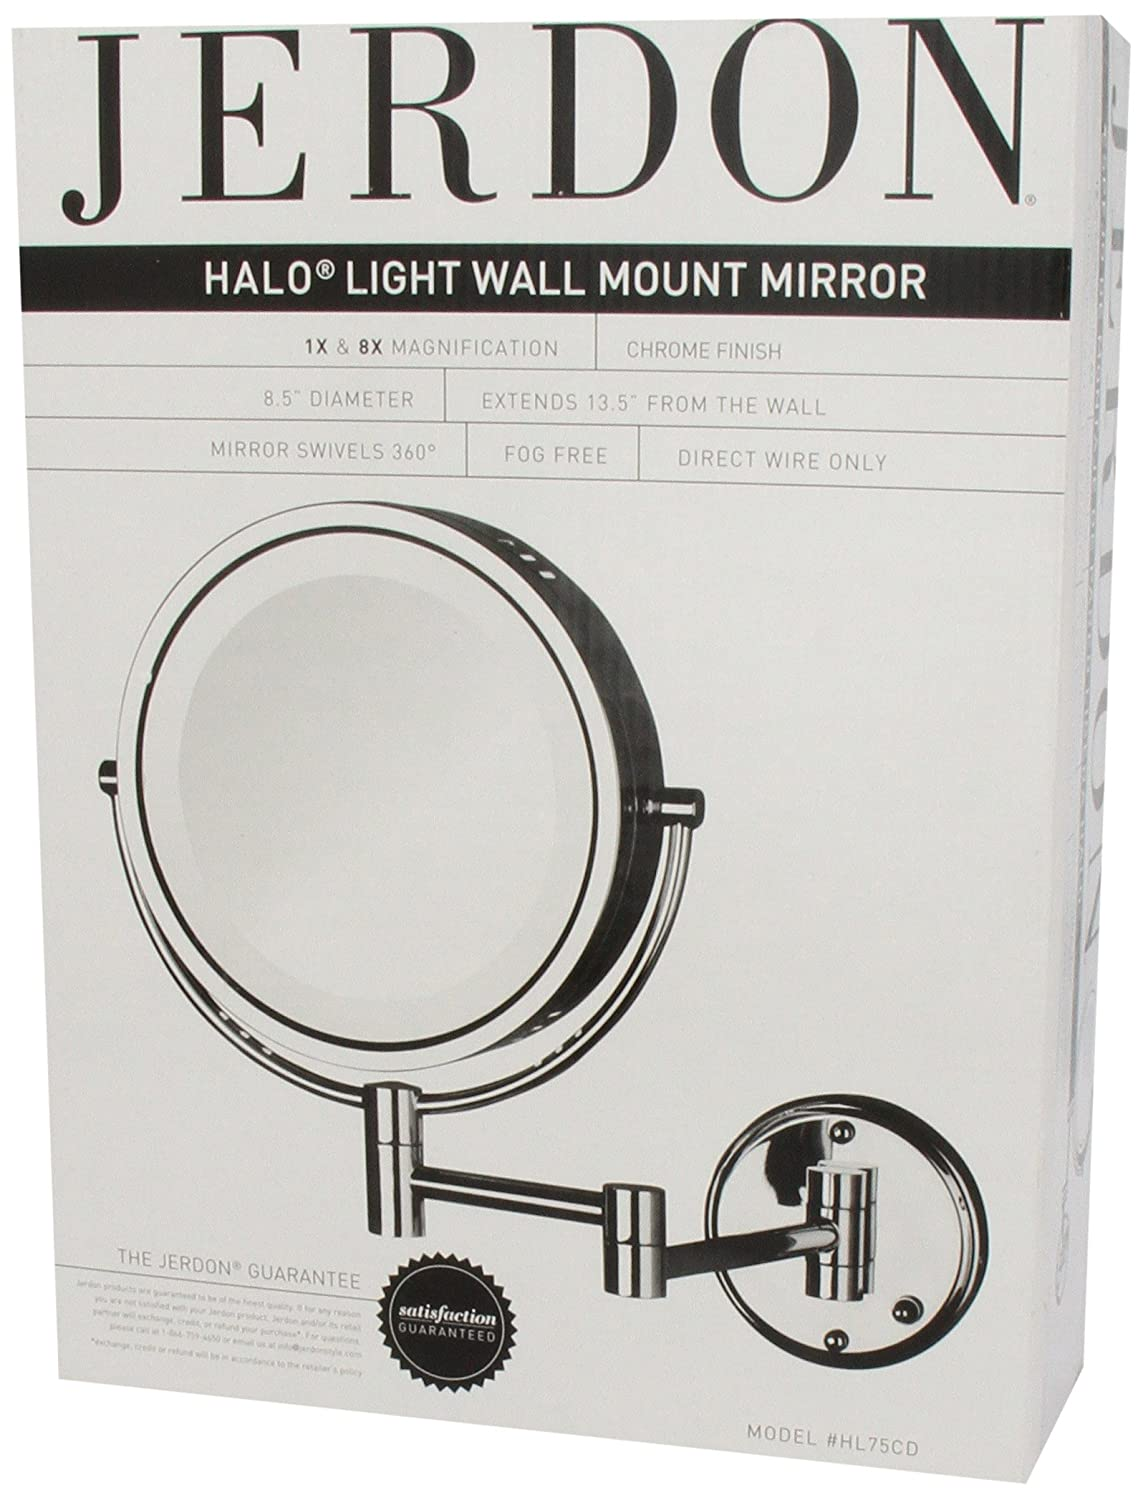 Amazon.com : Jerdon HL75CD 8.5-Inch Lighted Direct Wire Wall Mount Makeup  Mirror with 8x Magnification, Chrome Finish : Personal Makeup Mirrors :  Beauty